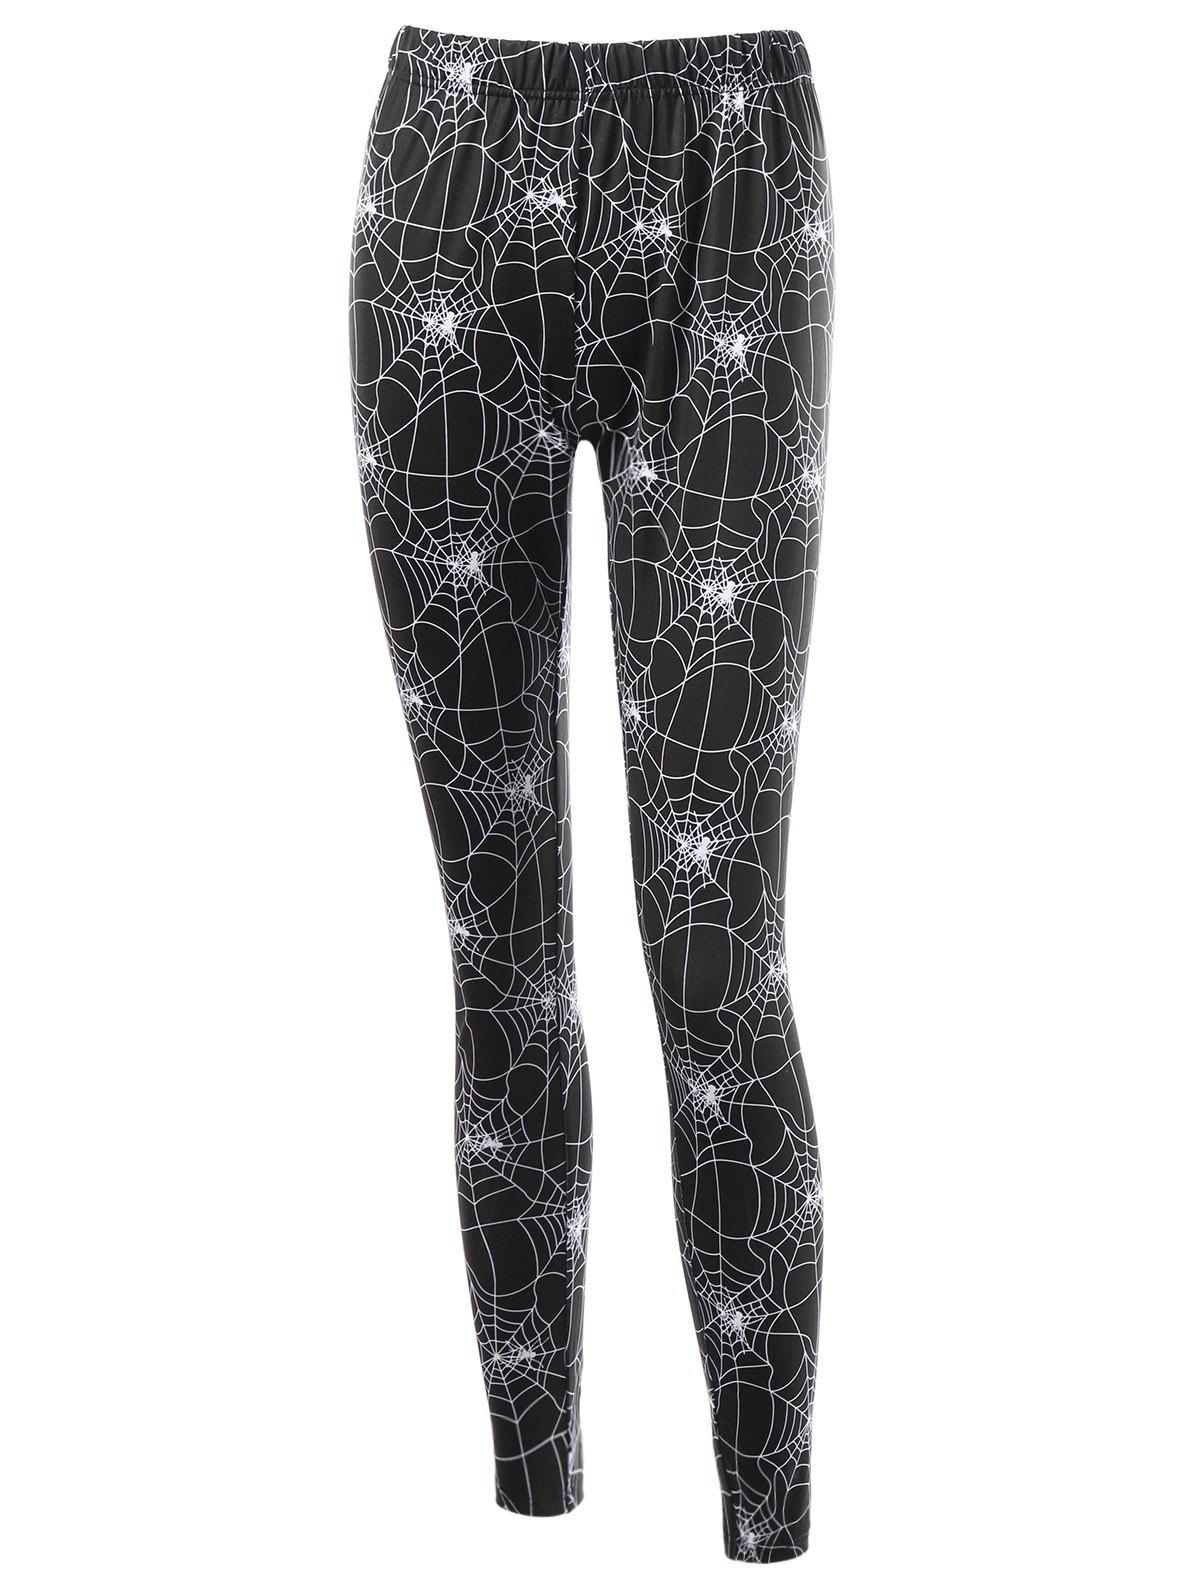 Halloween Spider Web Print Fitted LeggingsWOMEN<br><br>Size: 2XL; Color: BLACK; Style: Casual; Material: Polyester,Spandex; Waist Type: High; Pattern Type: Print; Elasticity: Elastic; Weight: 0.2500kg; Package Contents: 1 x Leggings;